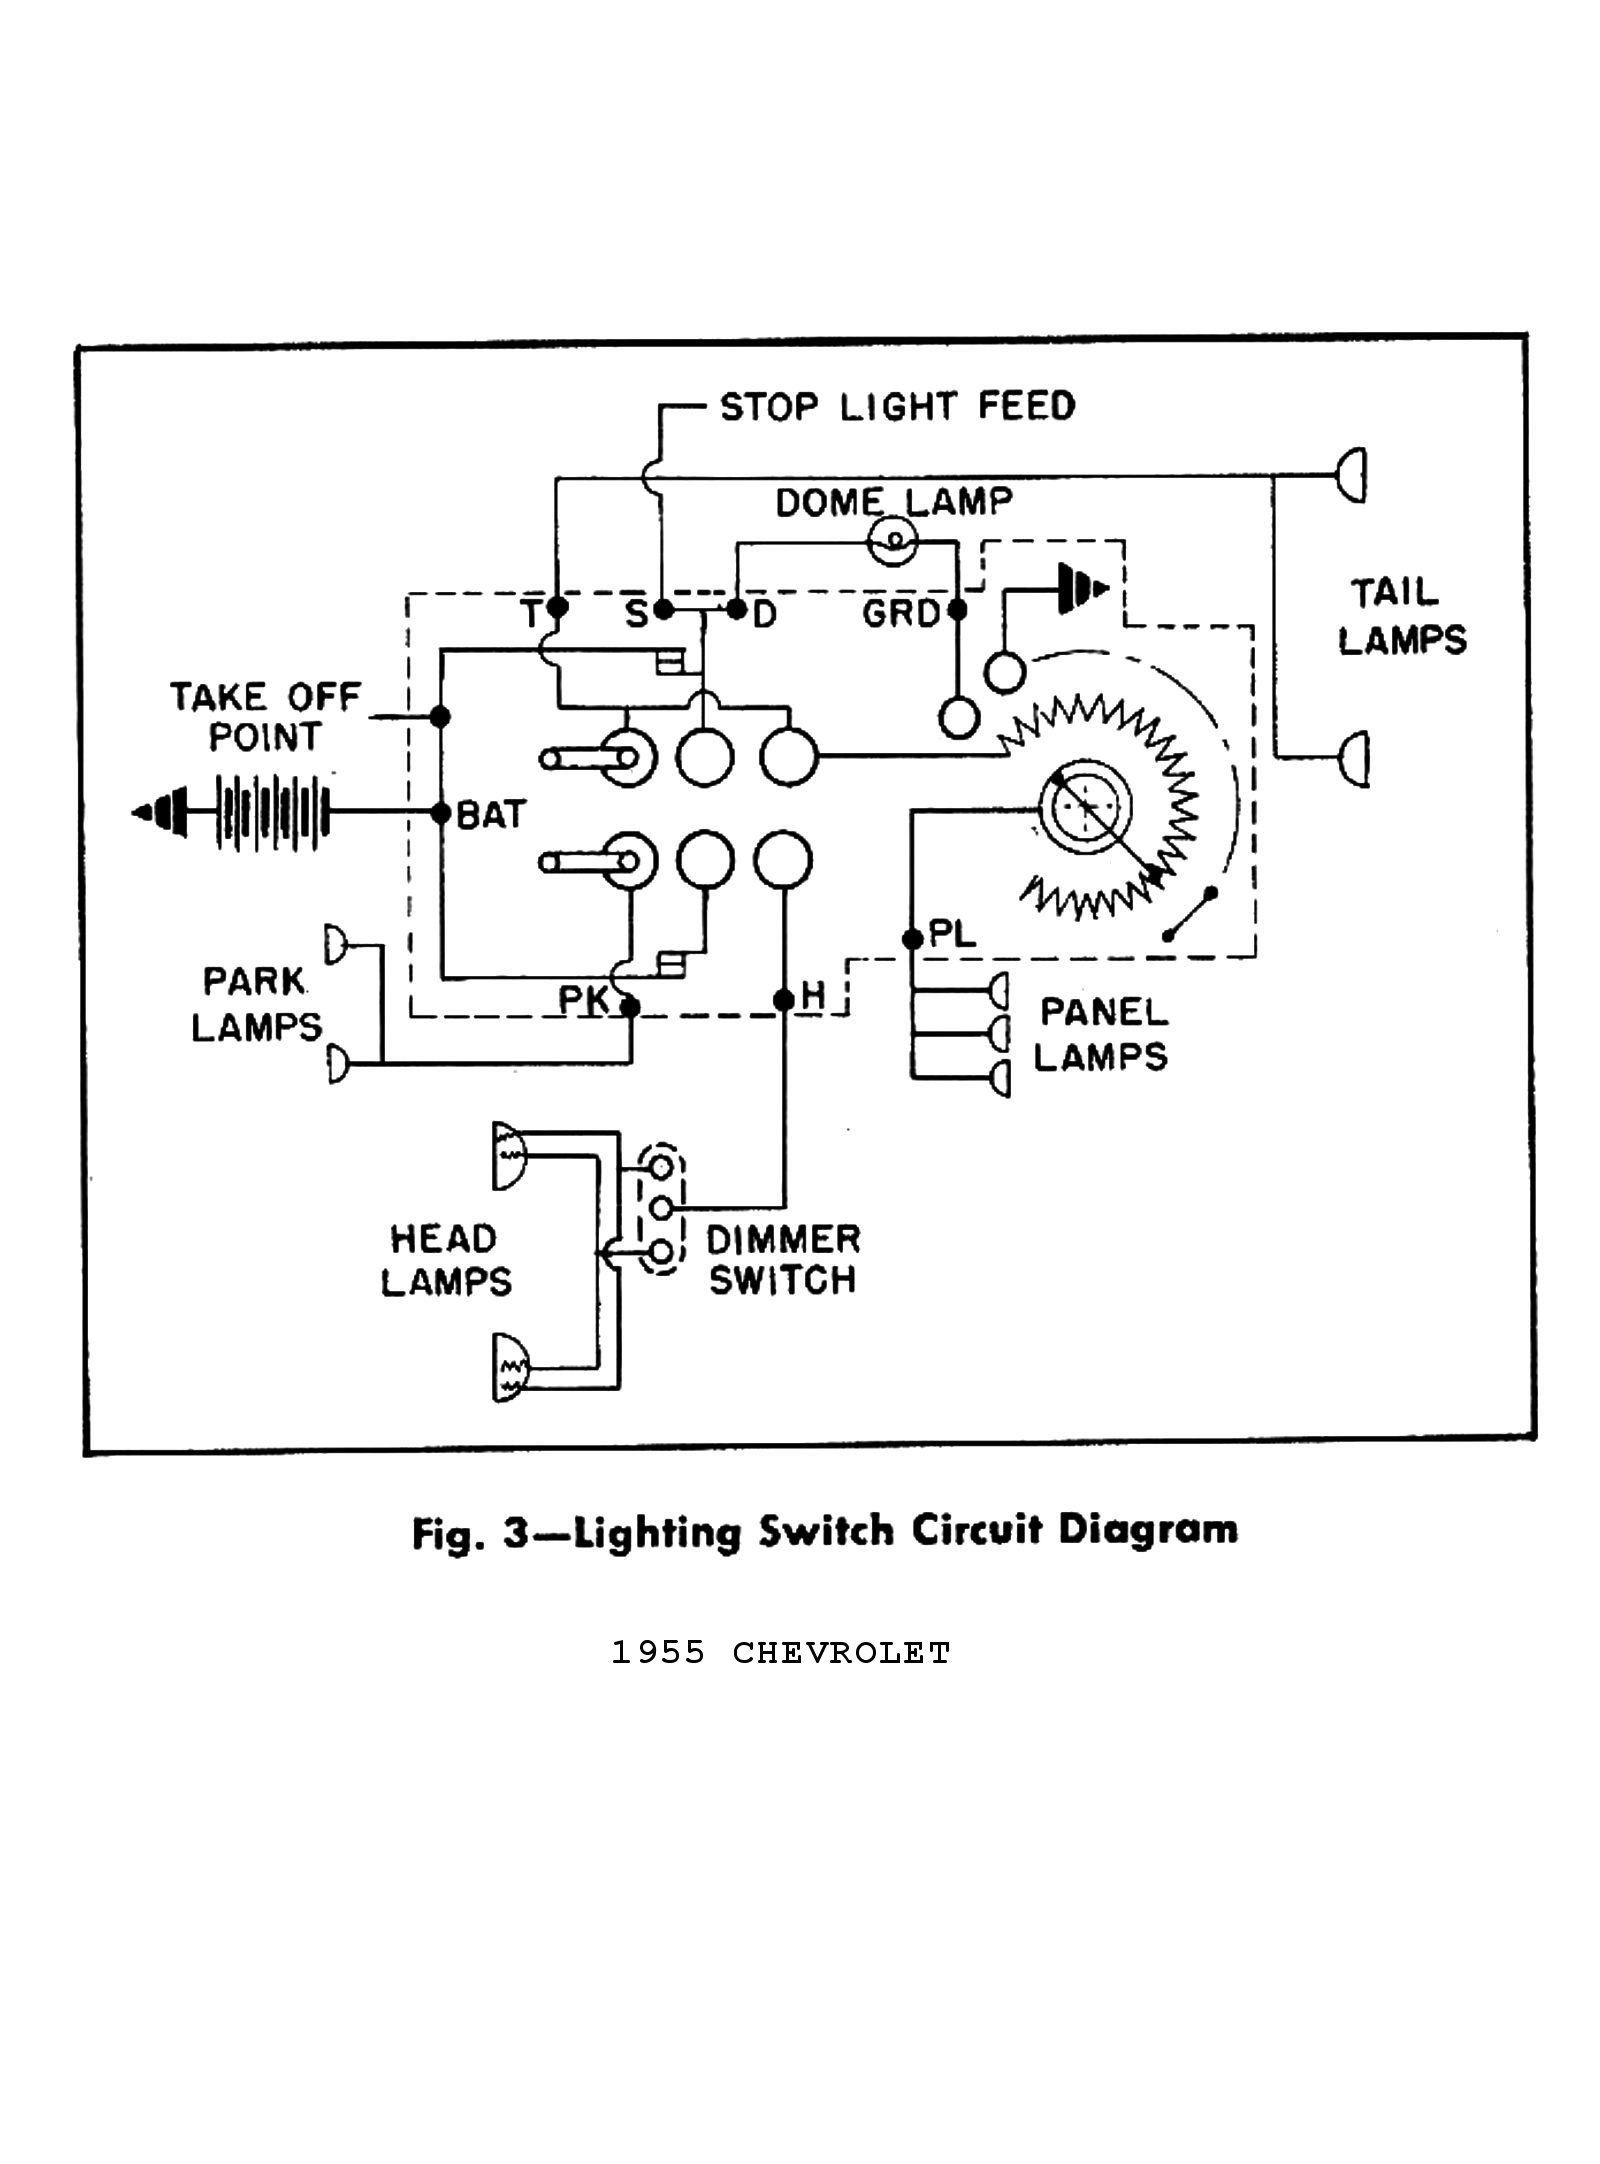 cat6 punch down wiring diagram Download-gm headlight switch wiring diagram Collection 1955 Lighting Switch Circuit 5 f DOWNLOAD Wiring Diagram 3-i